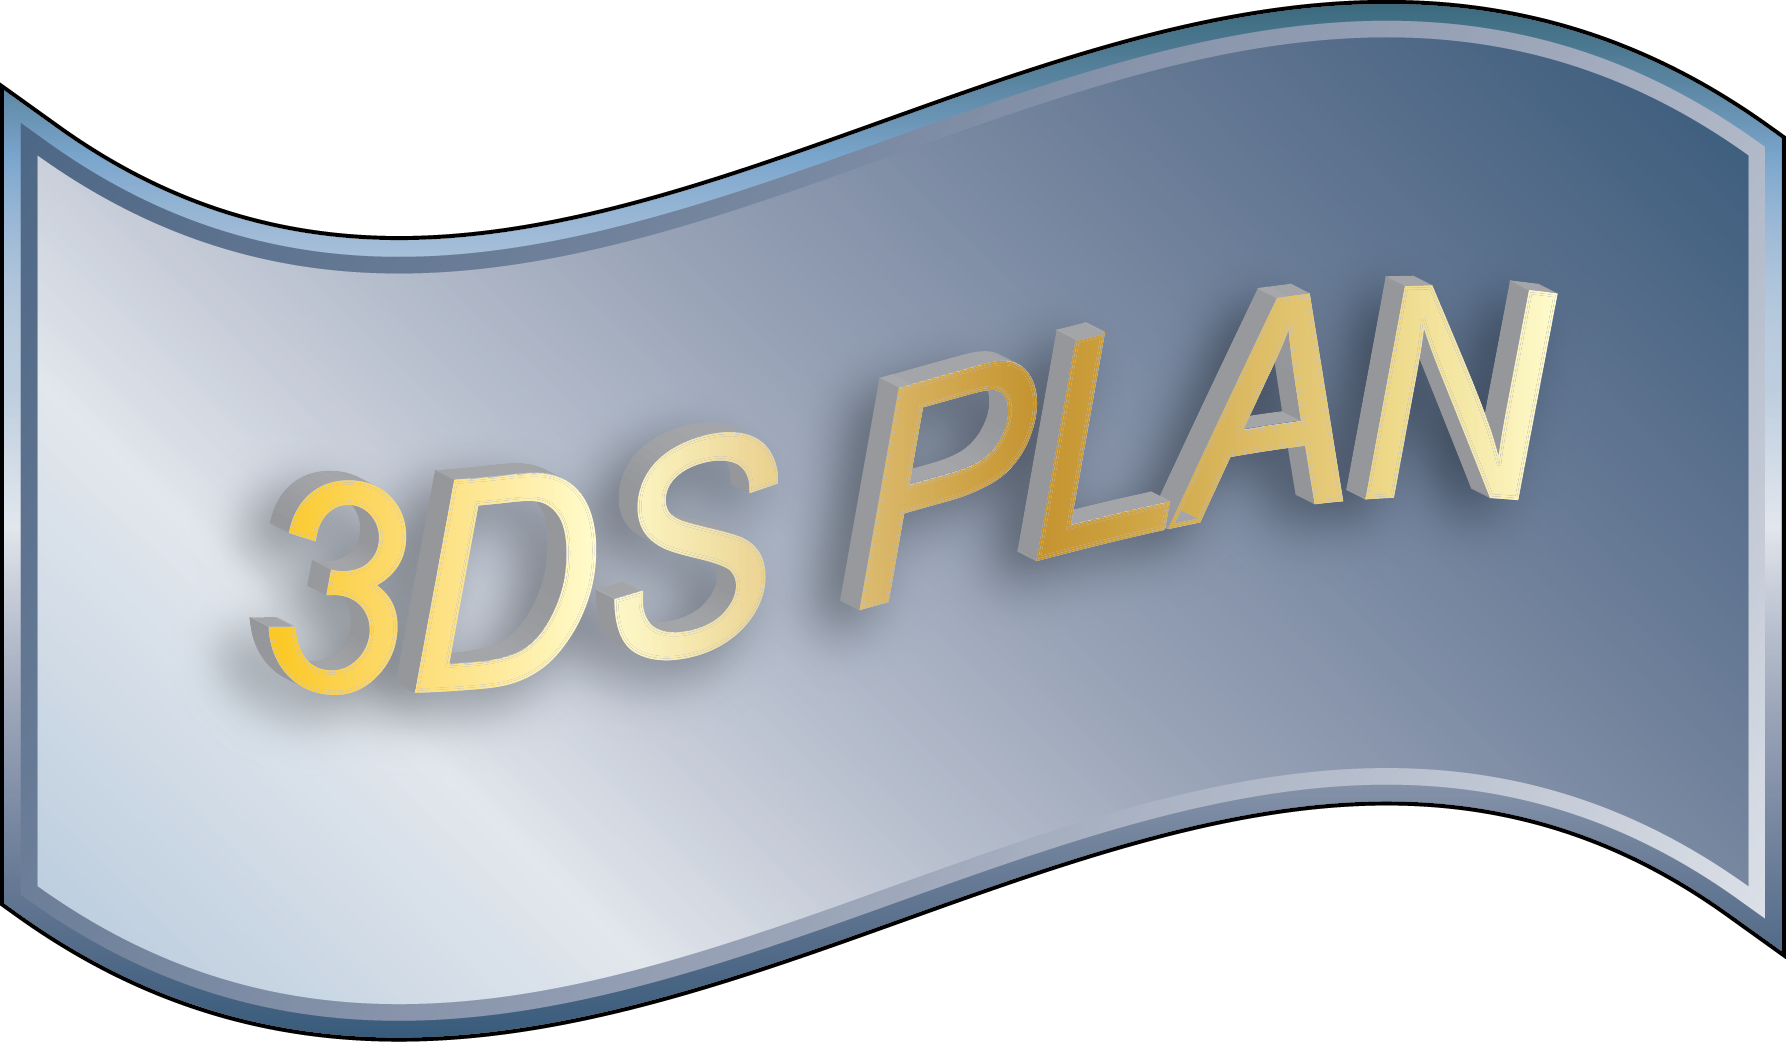 3DS PLAN ORBITS